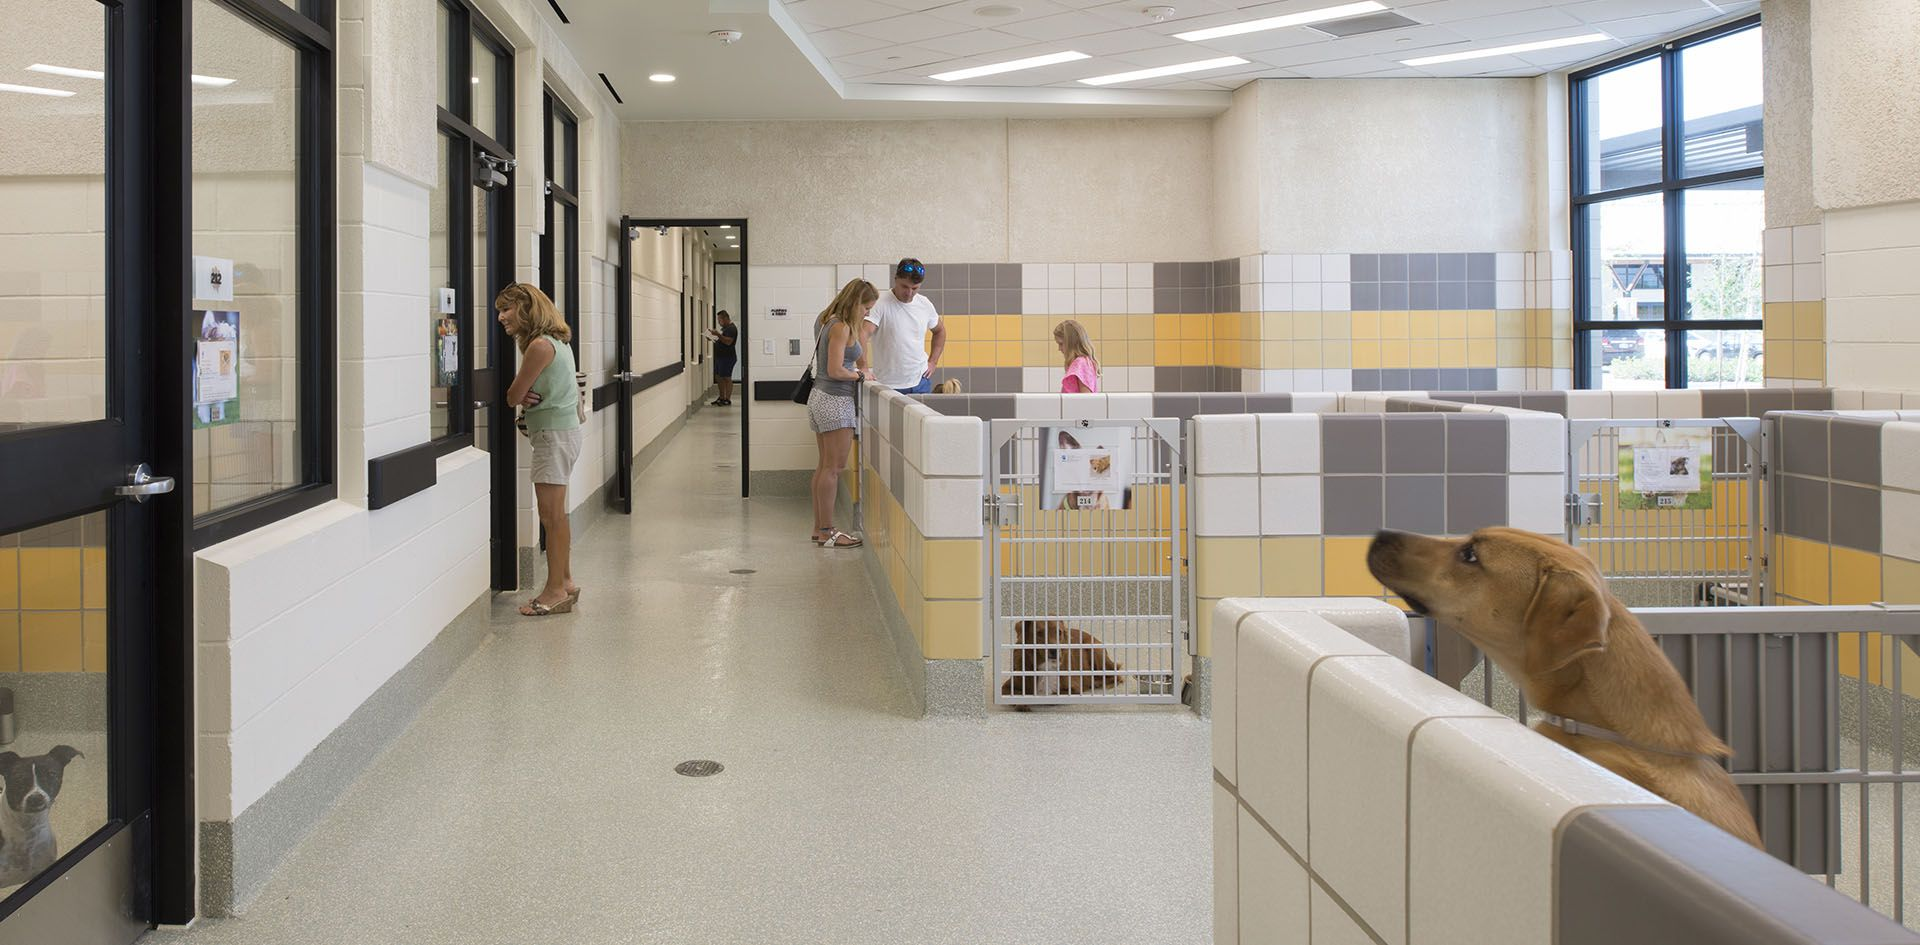 9 Hspca State Of The Art Animal Shelter And Wildlife Center By Jackson Amp Ryan Architects Animal Shelter Animals Spca